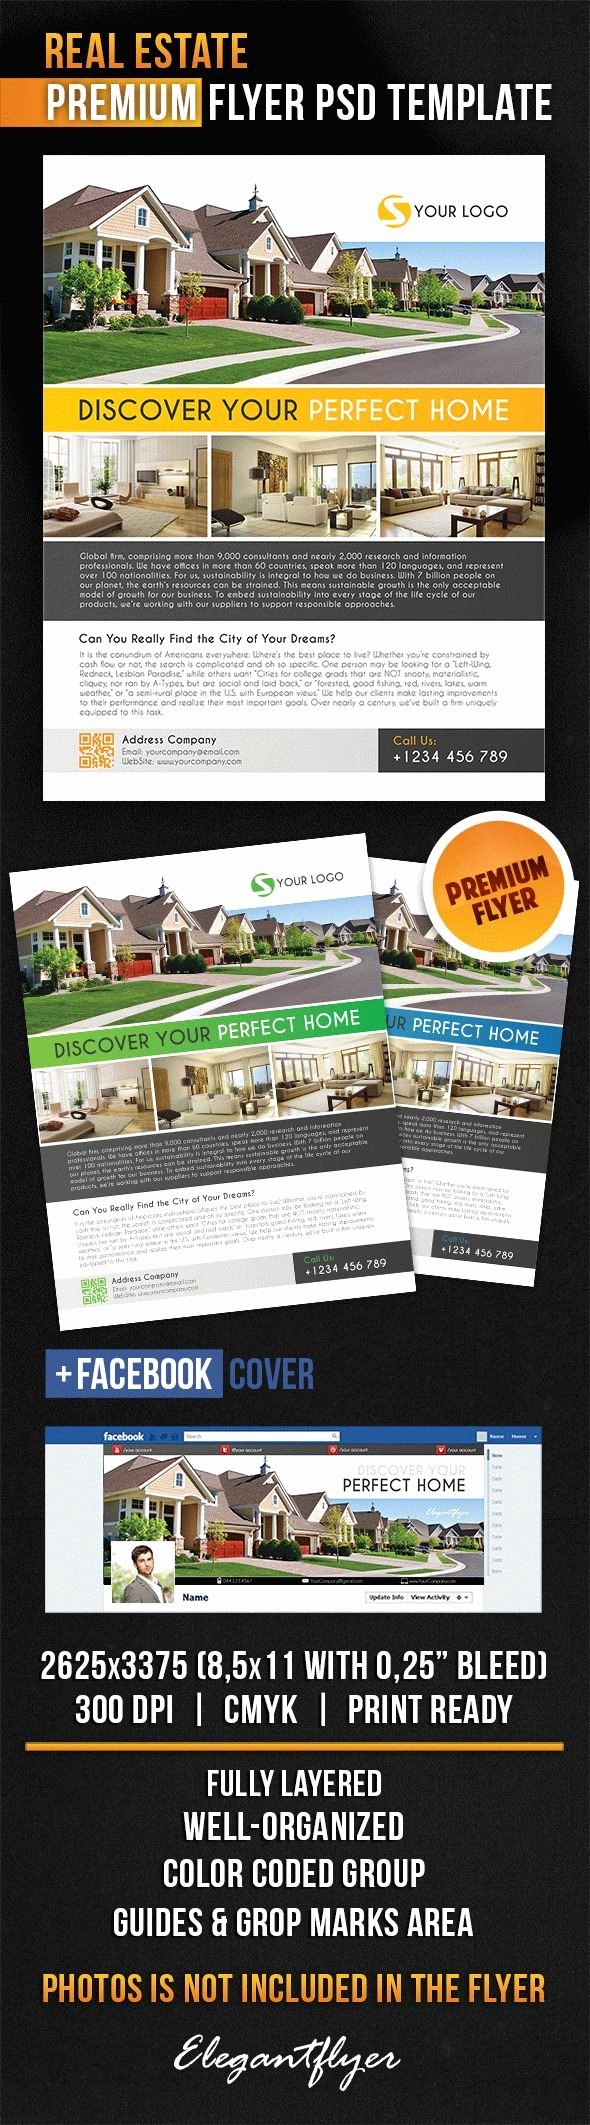 Real Estate Flyer Template Psd Beautiful Real Estate Flyer – by Elegantflyer